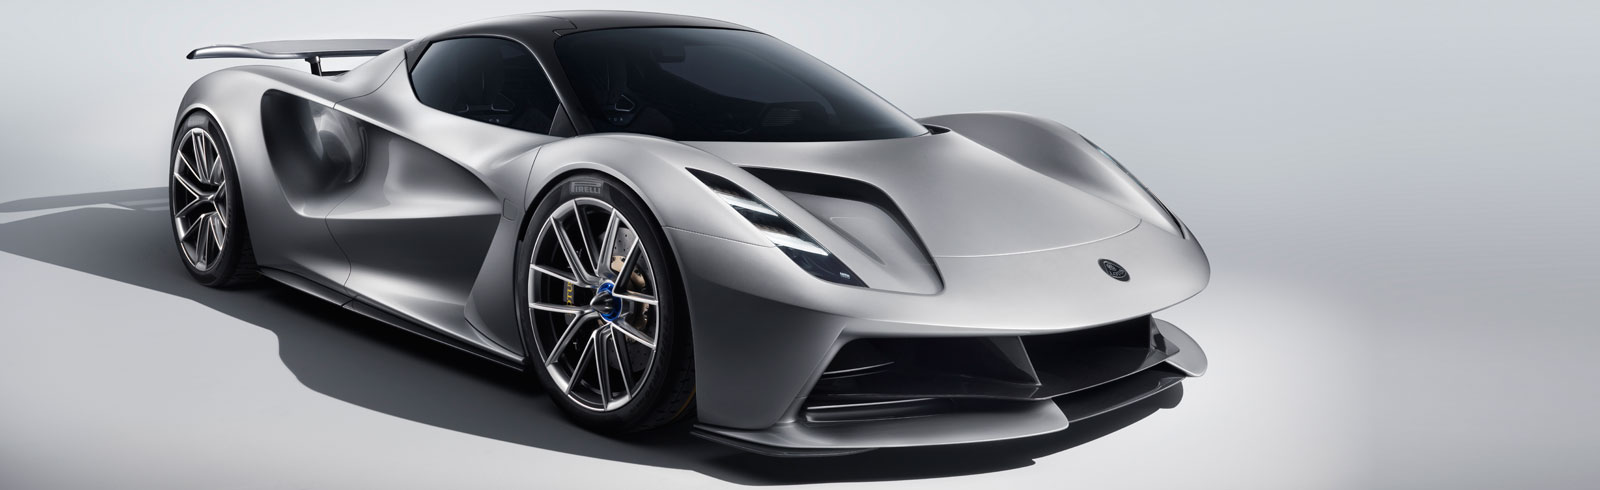 Lotus Evija is official with 400 km of range and 2000 ps of target motor power